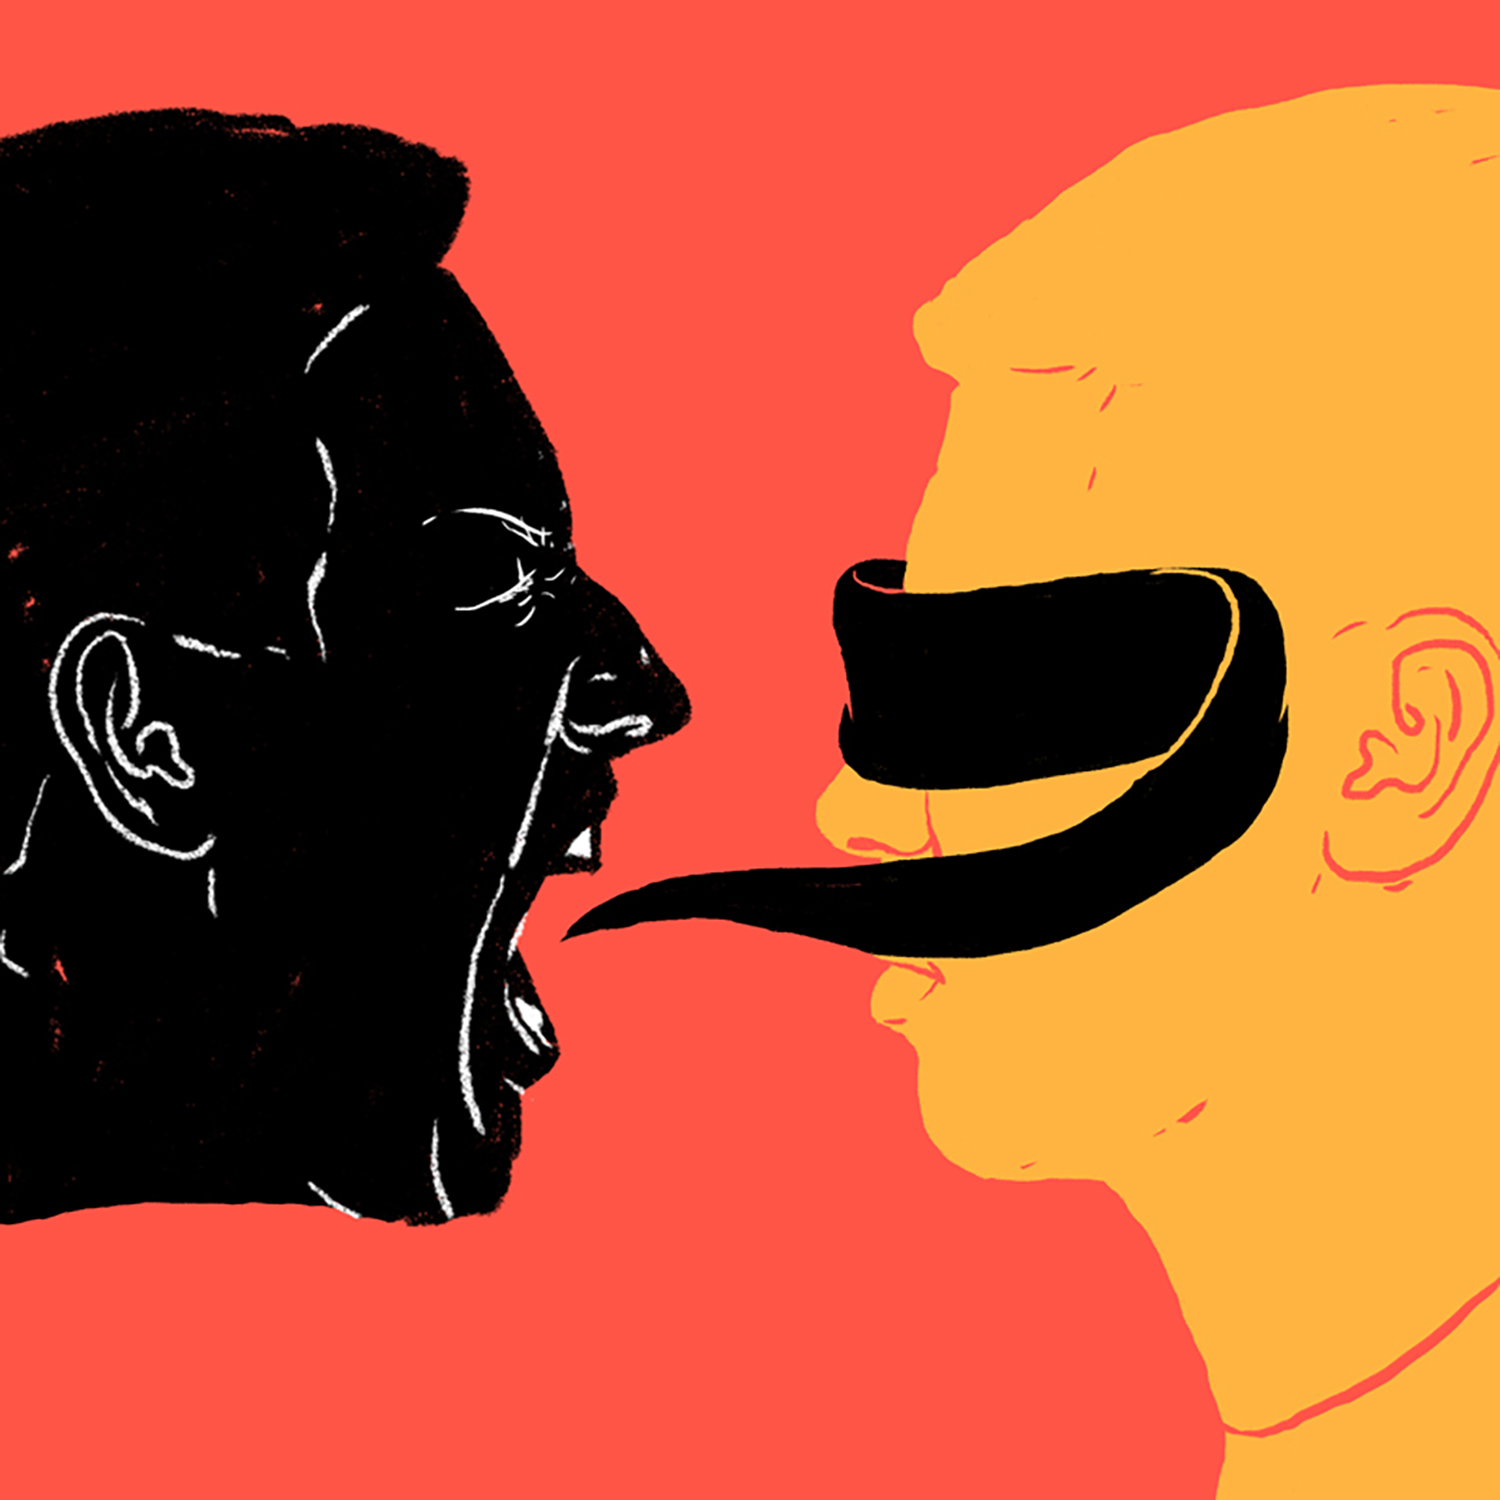 brightly colored illustration of one person whose yelling is obscuring the eyes of a second person with a blindfold.